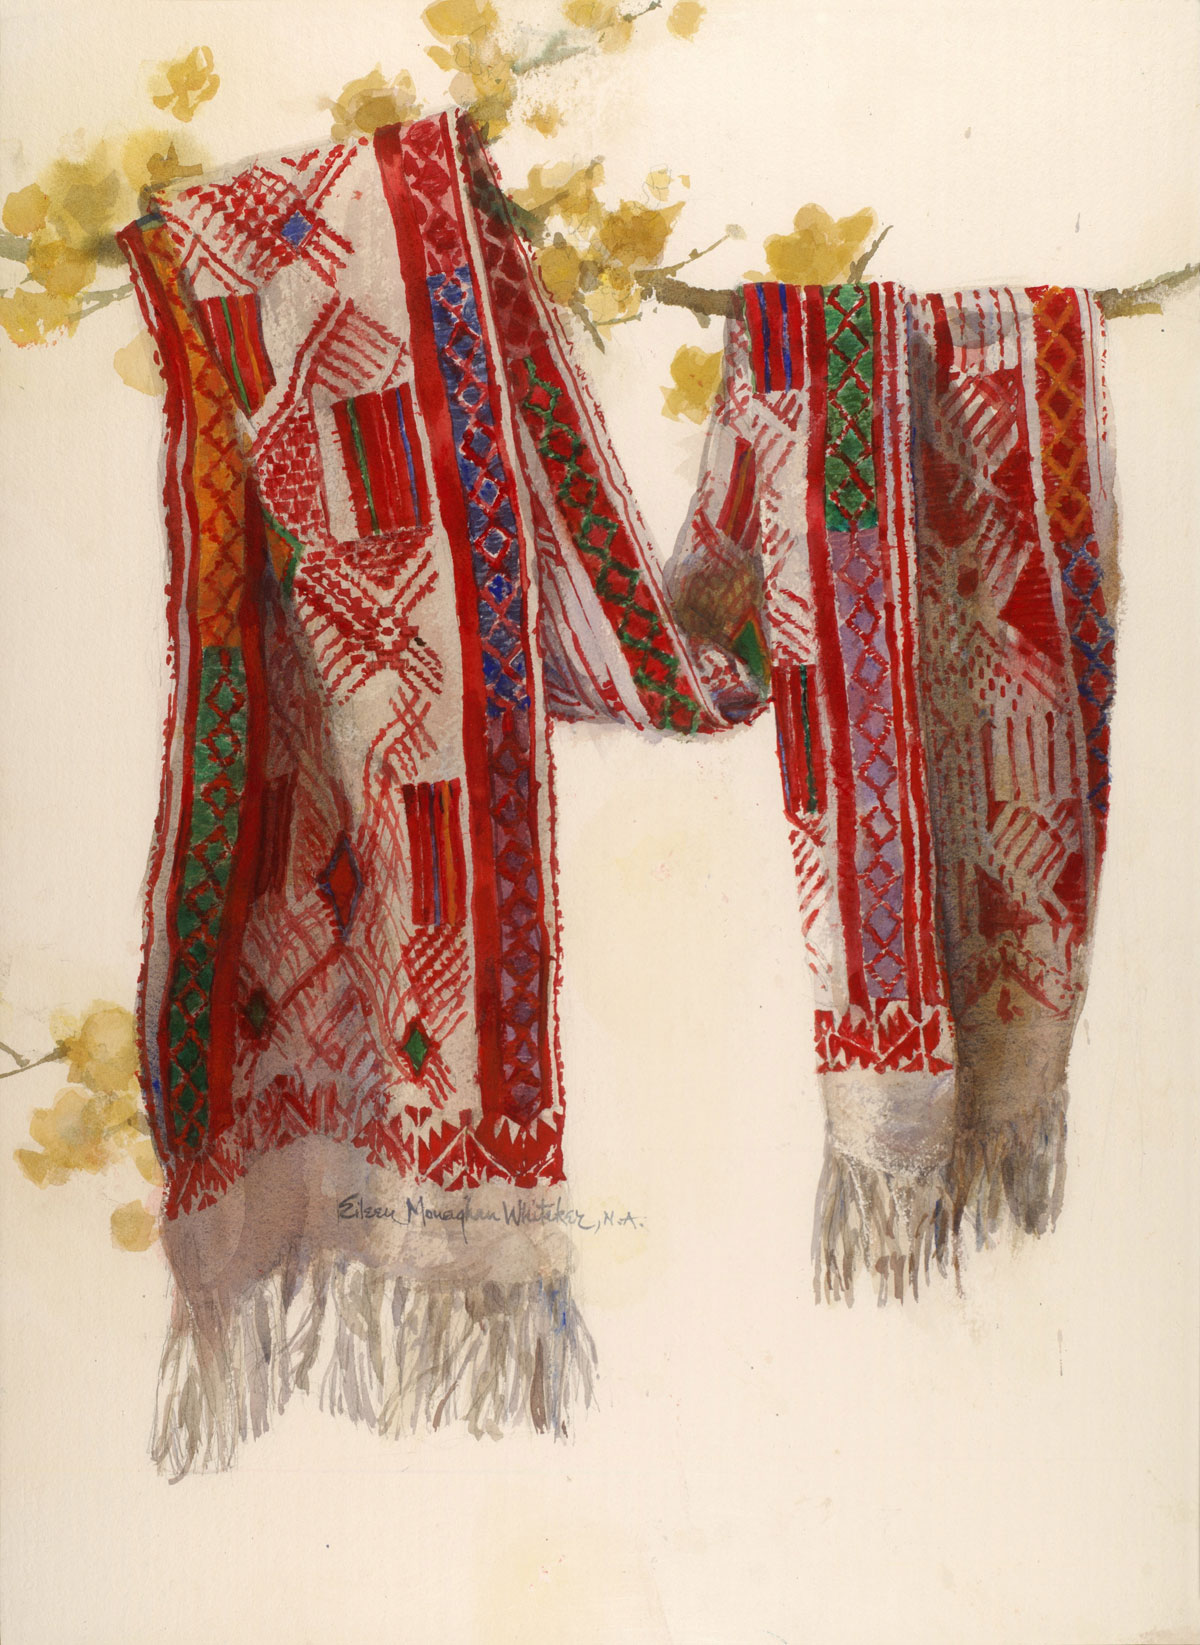 """""""Ancient Design"""" 1989 © Eileen Monaghan Whitaker 30x22 inches Watercolor"""